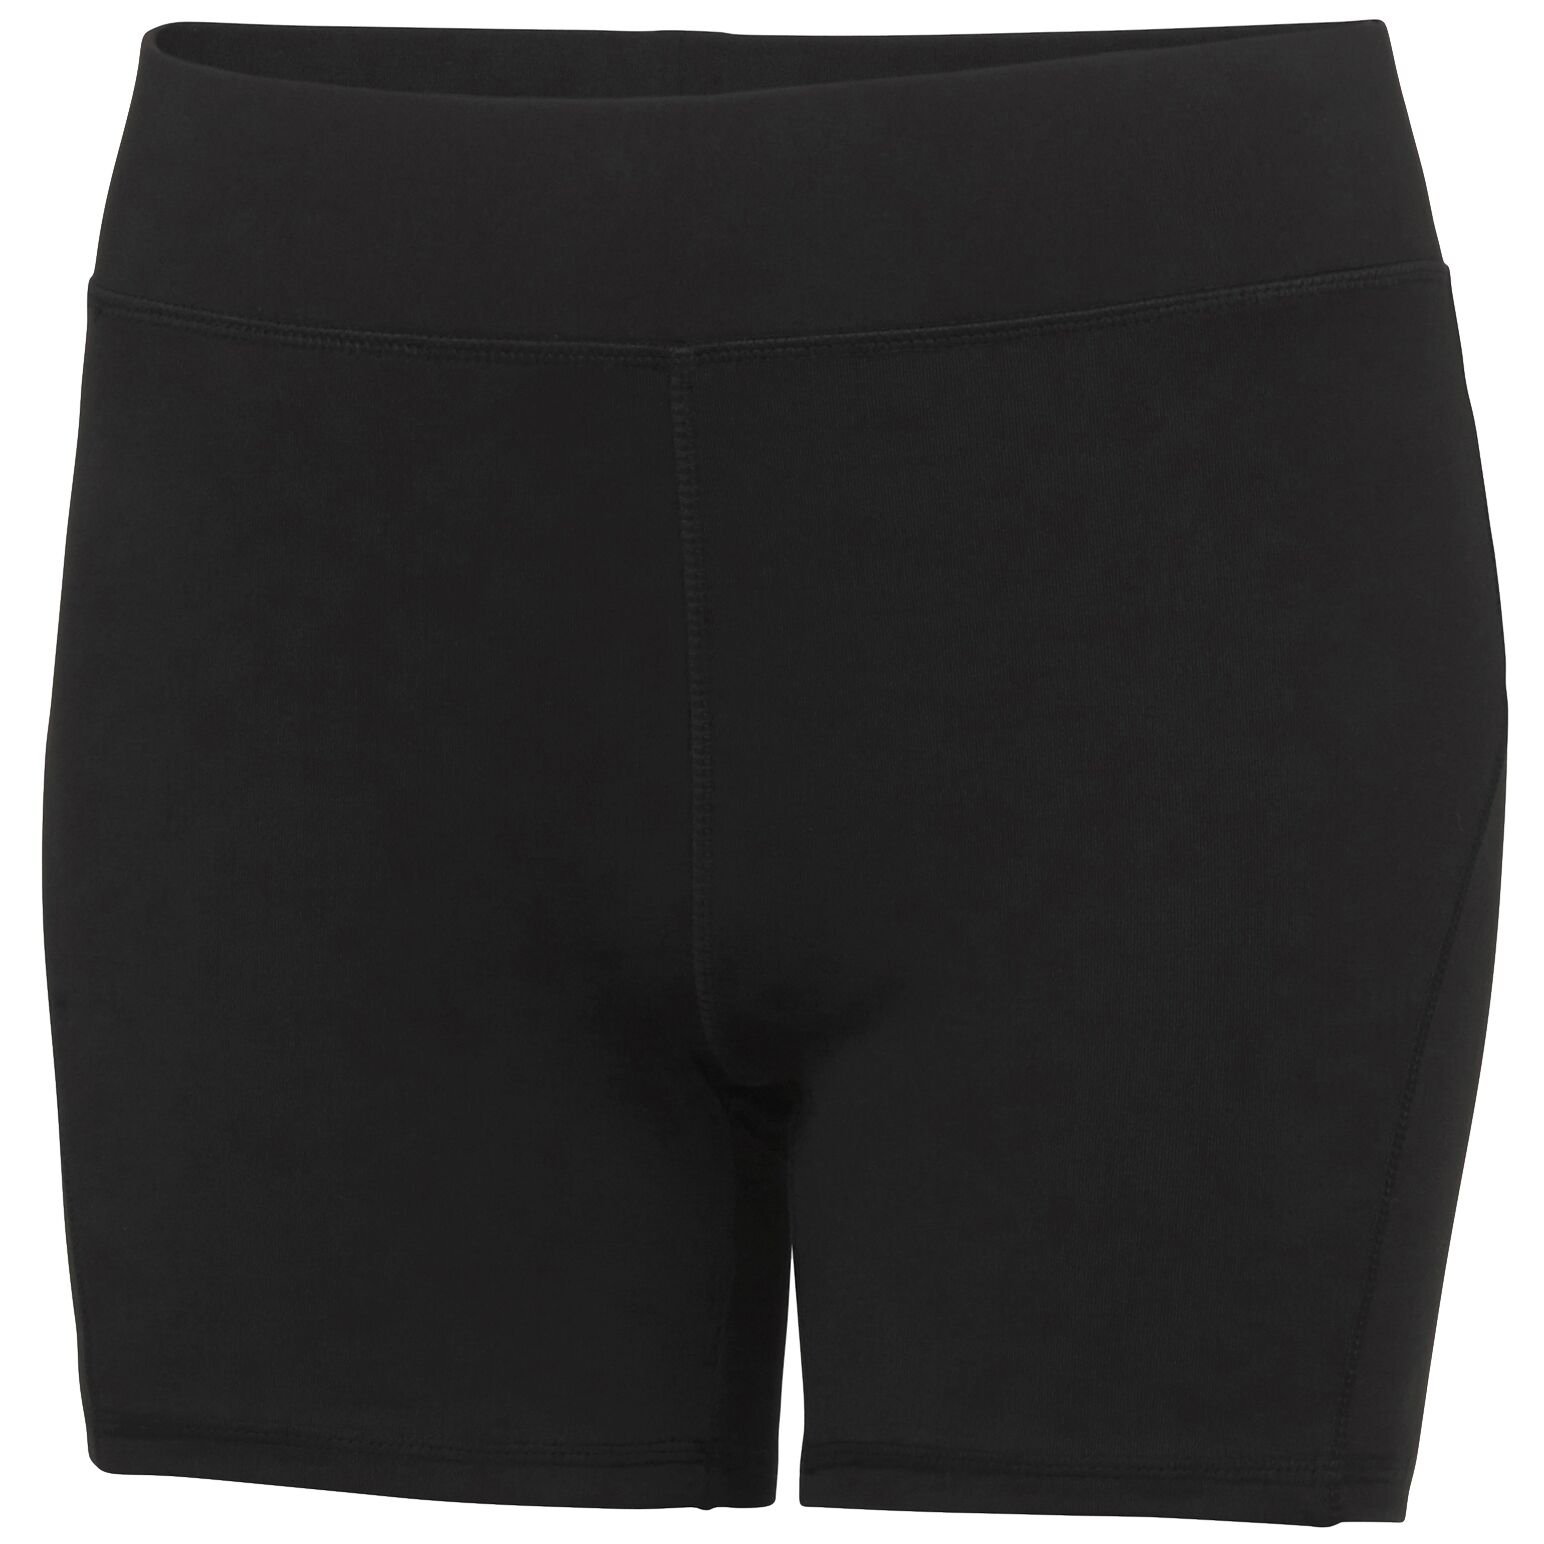 PGC Ladies Power shorts